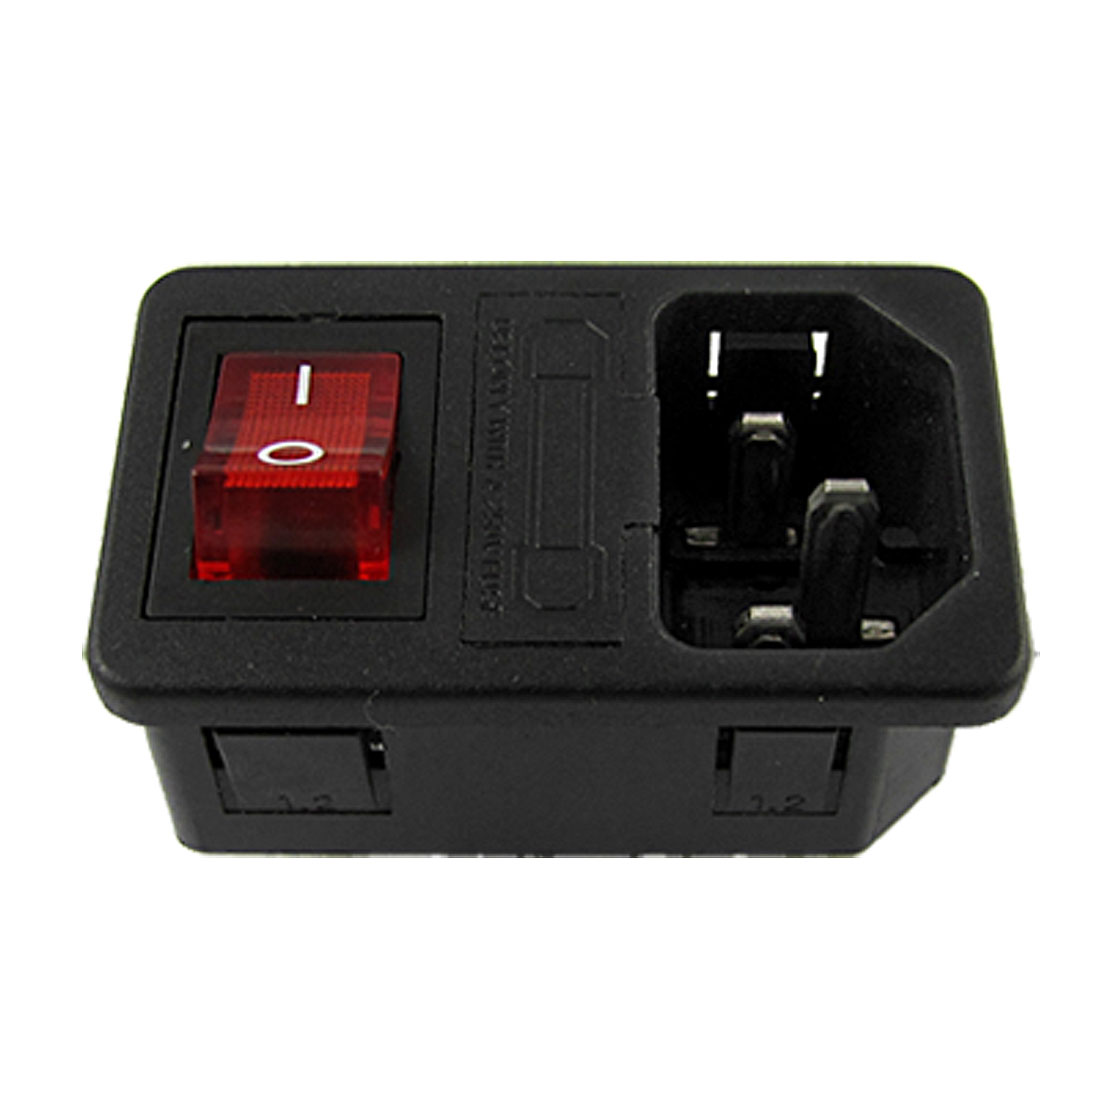 E60320 C14 Power Supply Plug Adapter W Red LED Switch